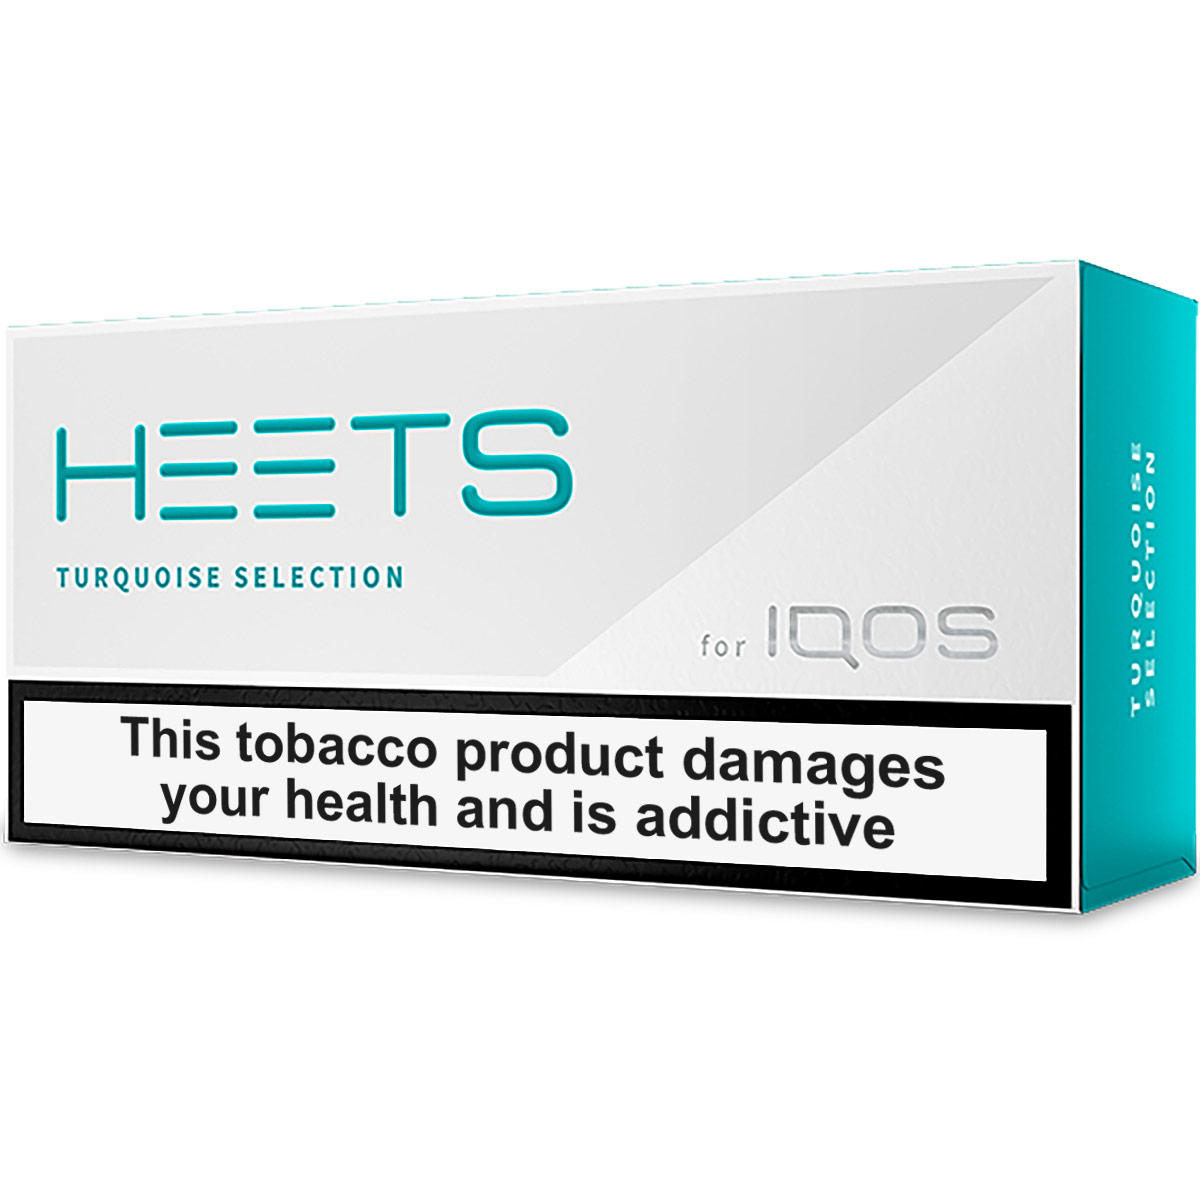 IQOS HEETS Turquoise Selection / Label (Central Asia)